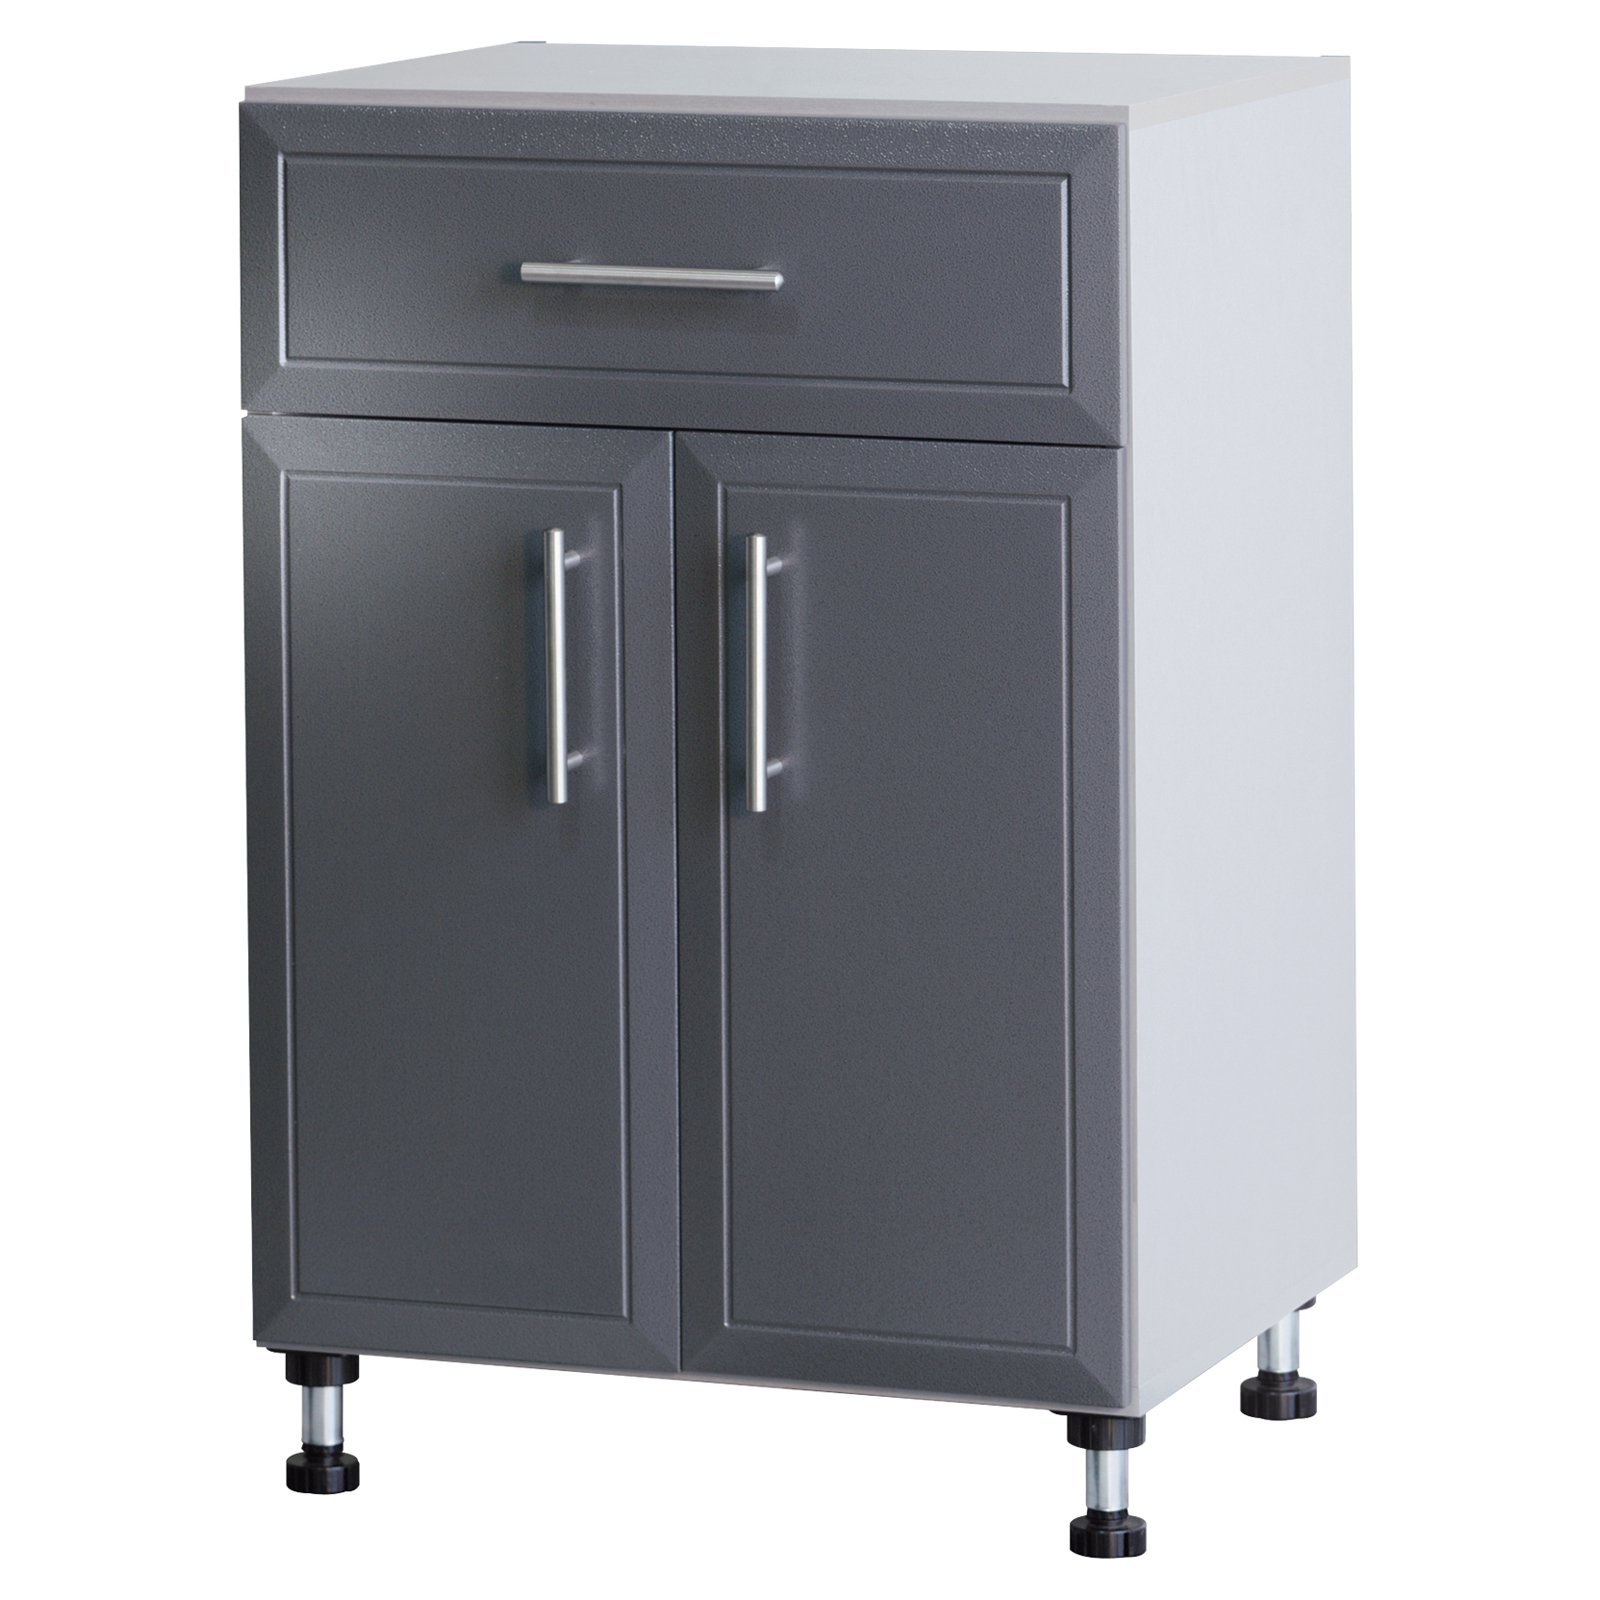 ClosetMaid ProGarage 2 Door Freestanding Cabinet with Drawer